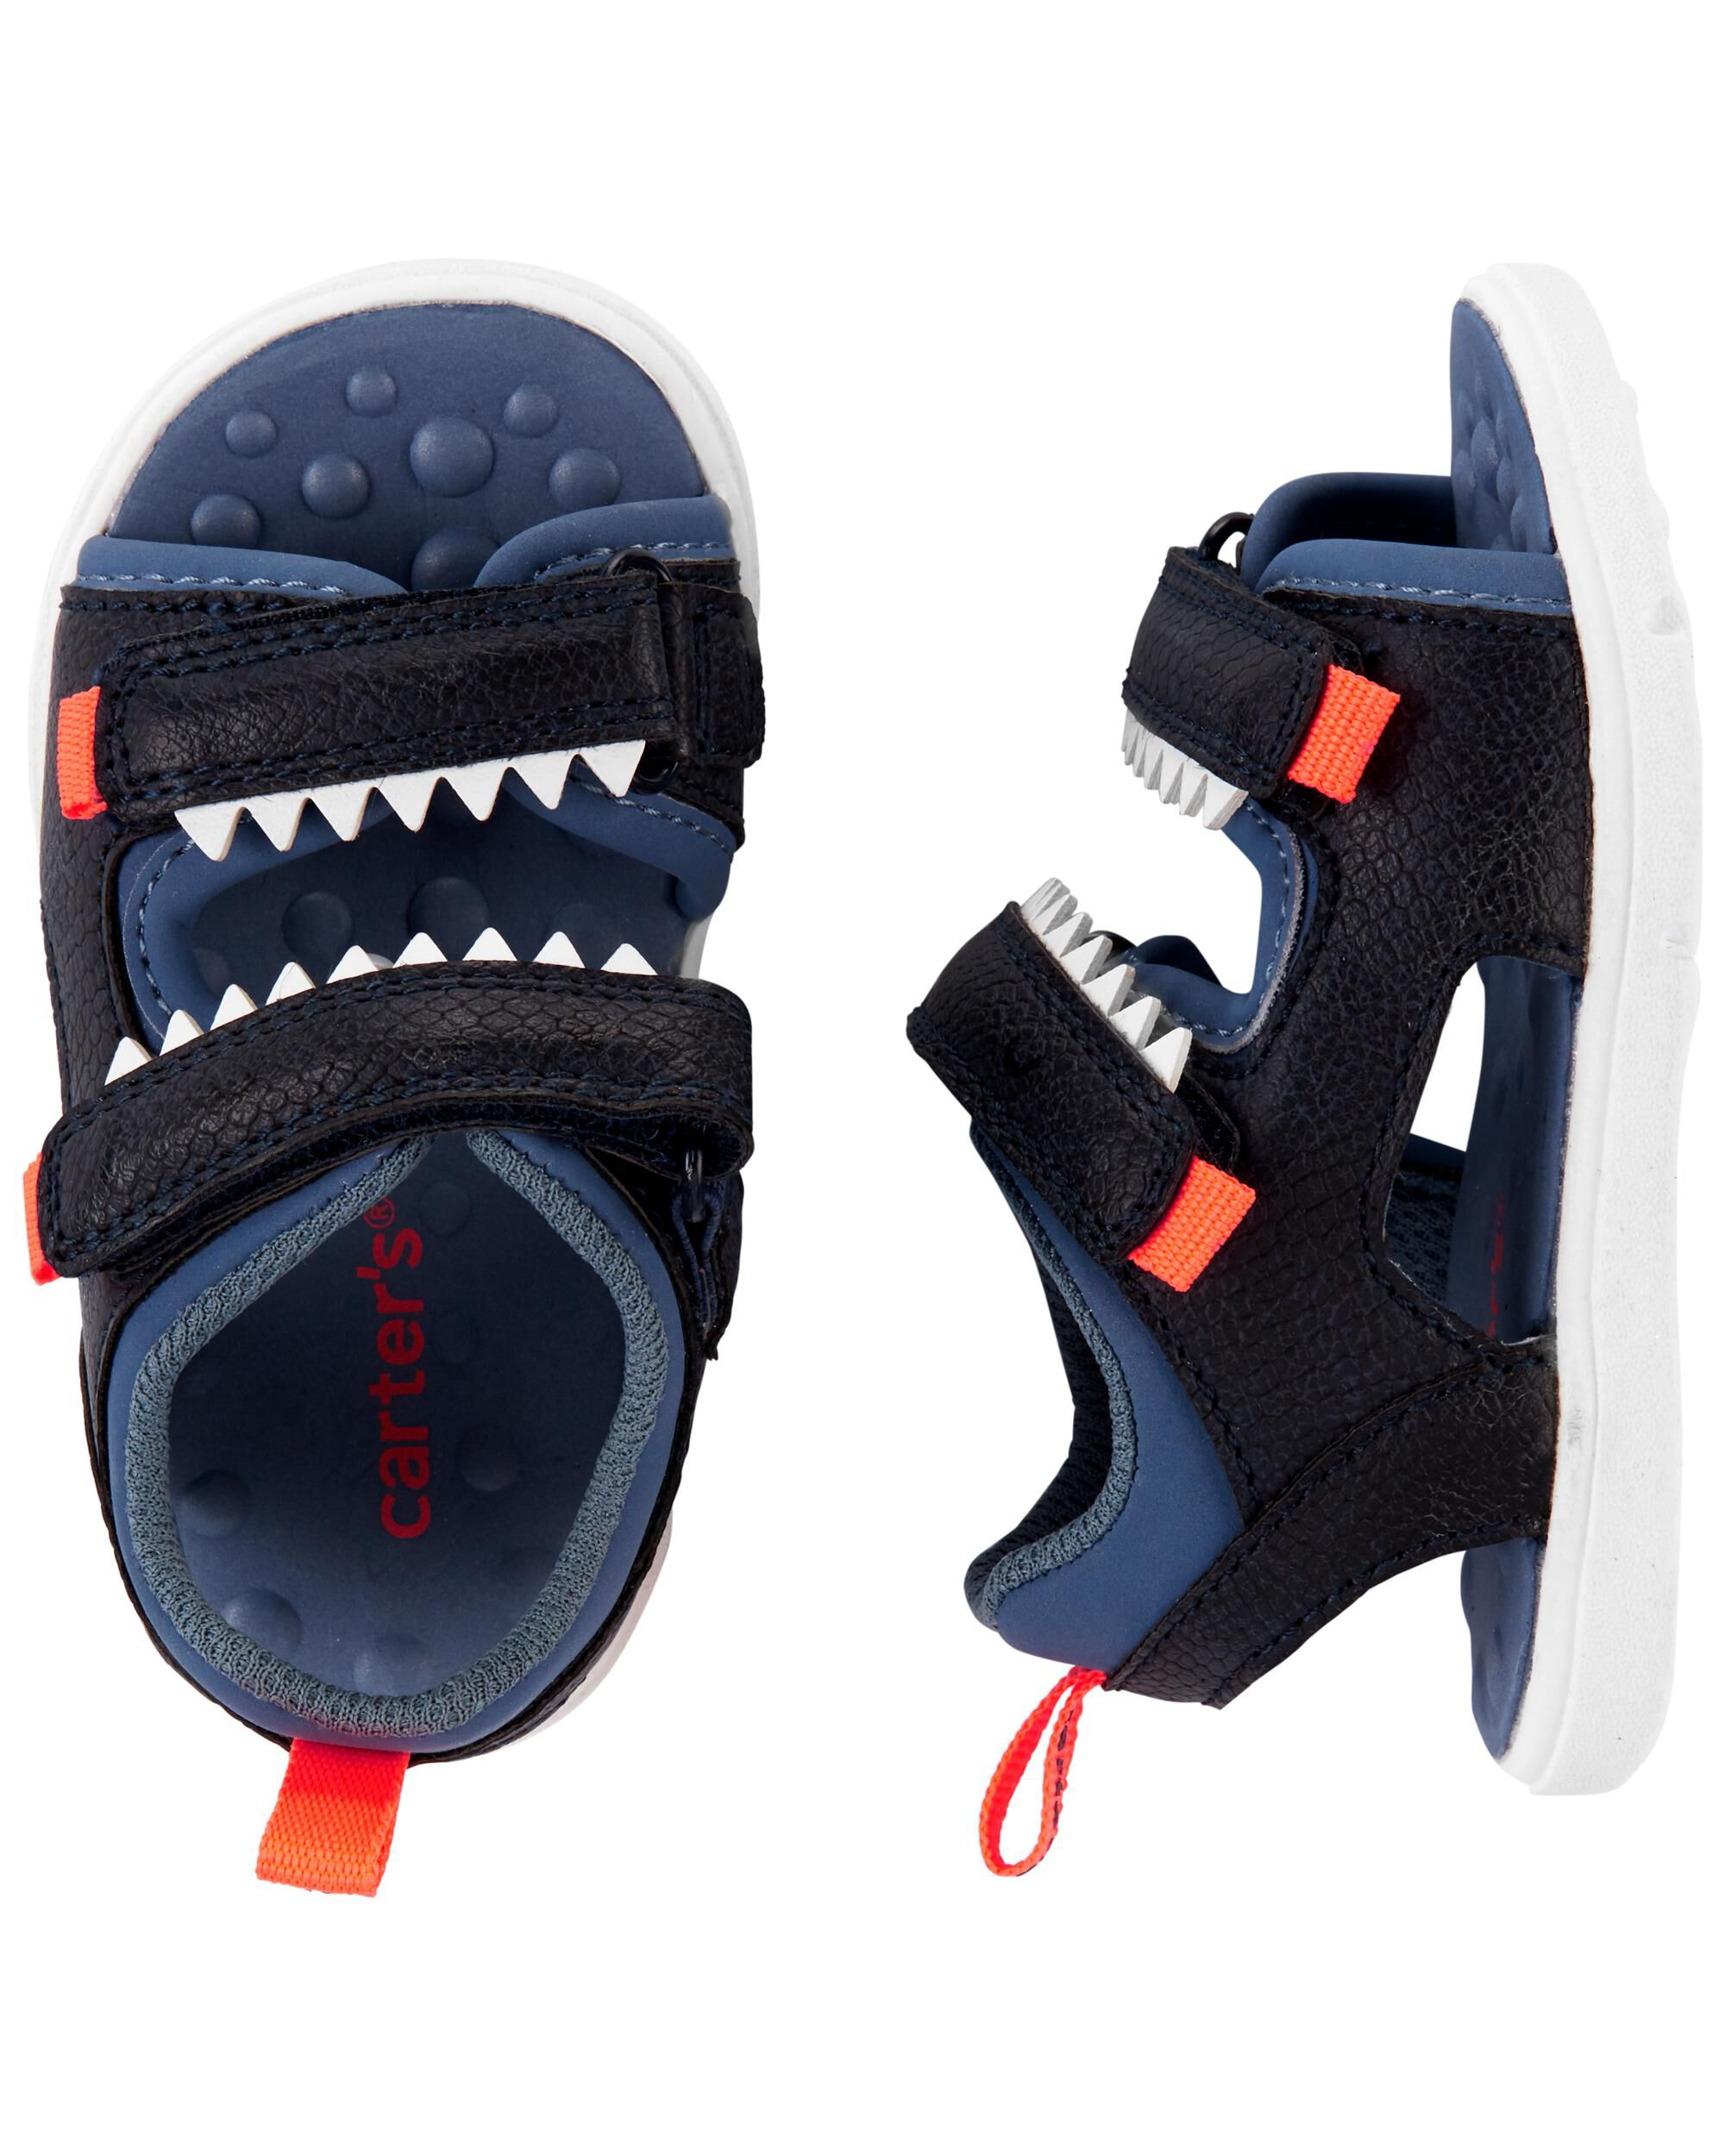 Carters Every Step Sandals